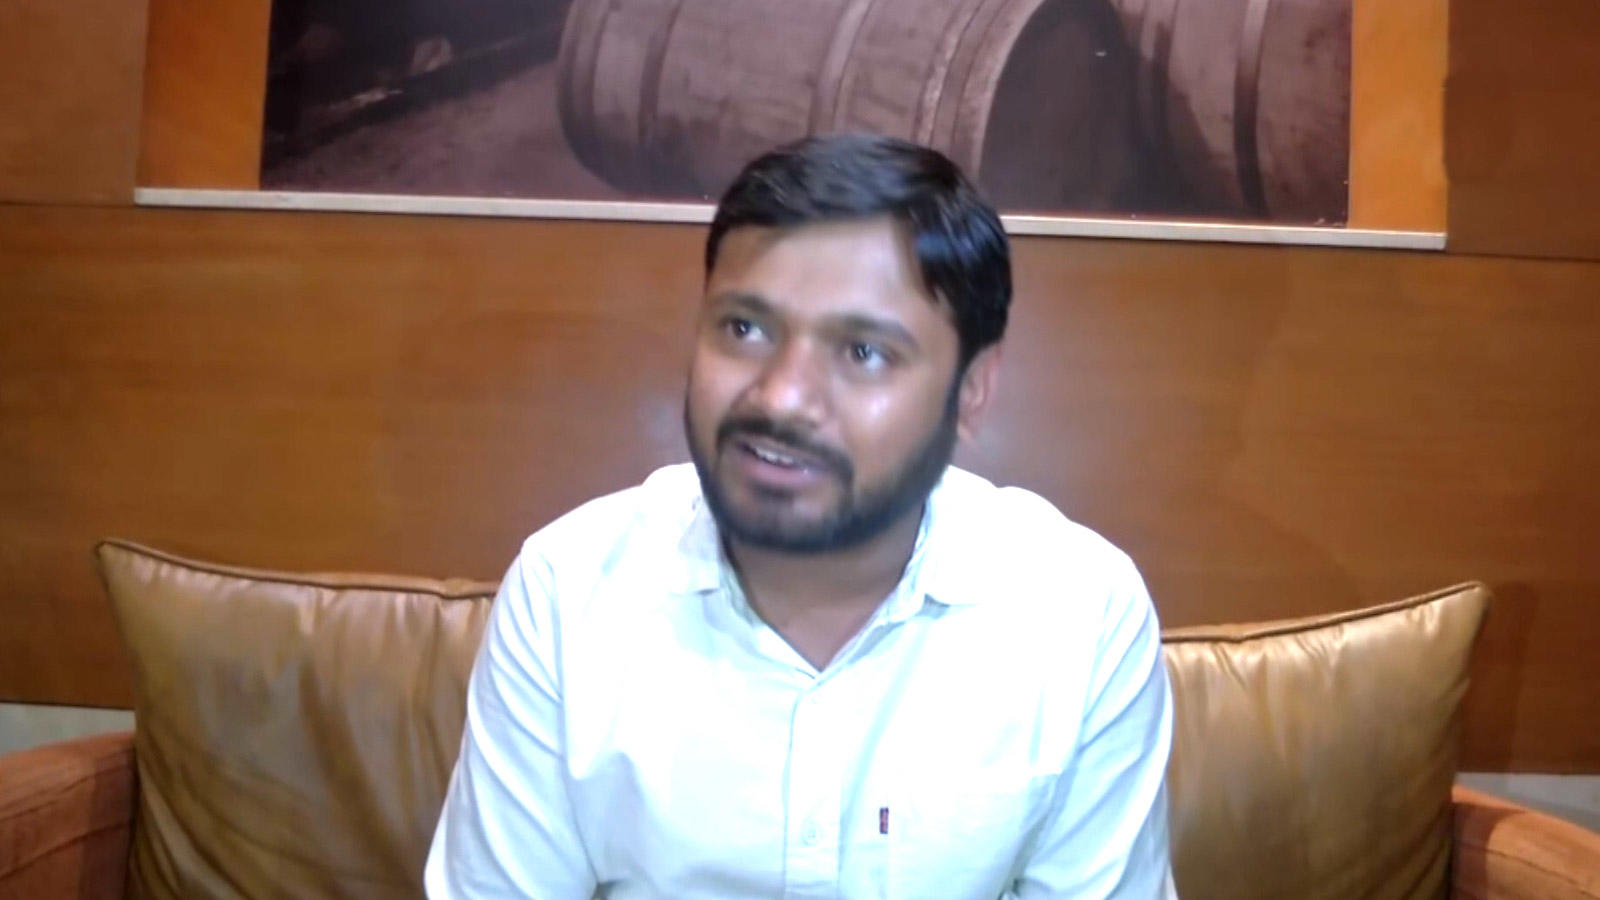 sedition-charge-ensure-speedy-trial-in-fast-track-court-says-kanhaiya-kumar